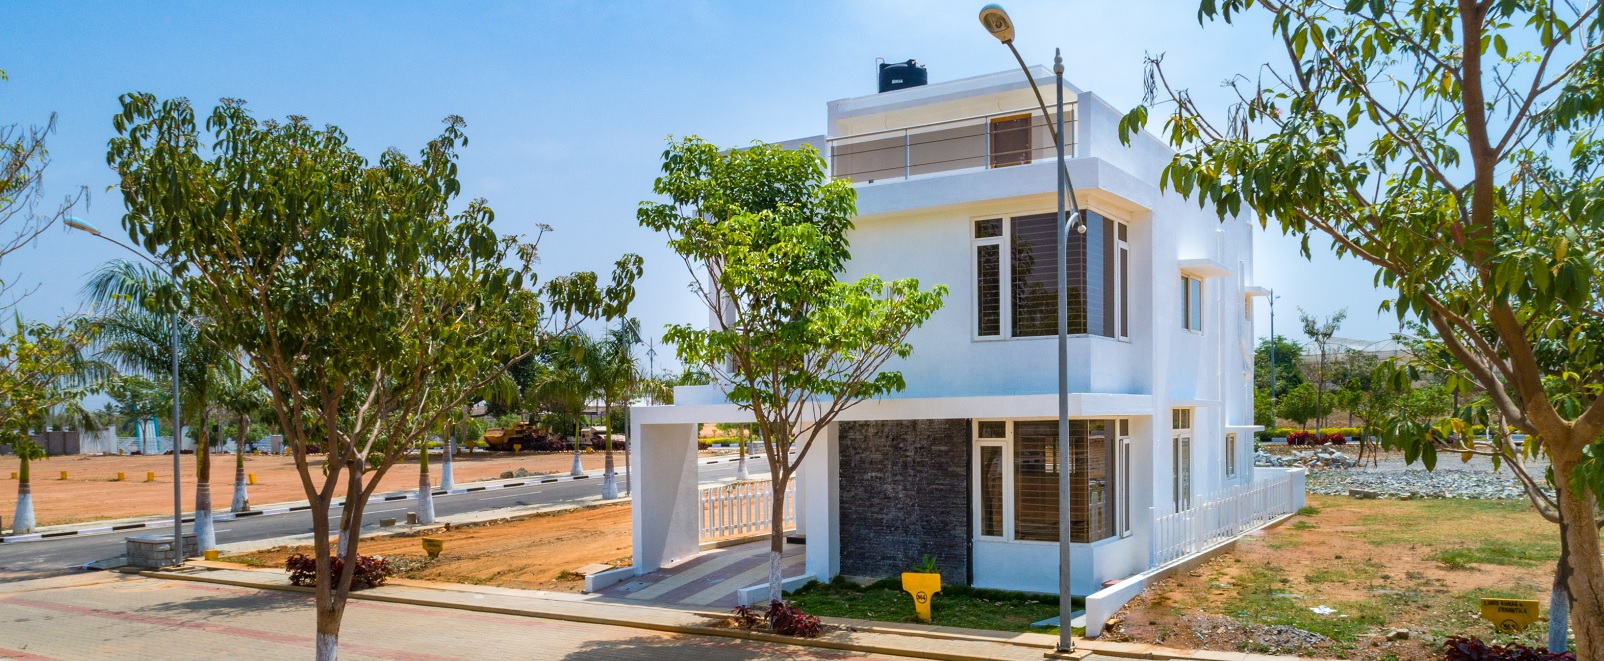 Want To Buy House In Bangalore 28 Images Where Are The Rich Buying Homes In Hyderabad 4br